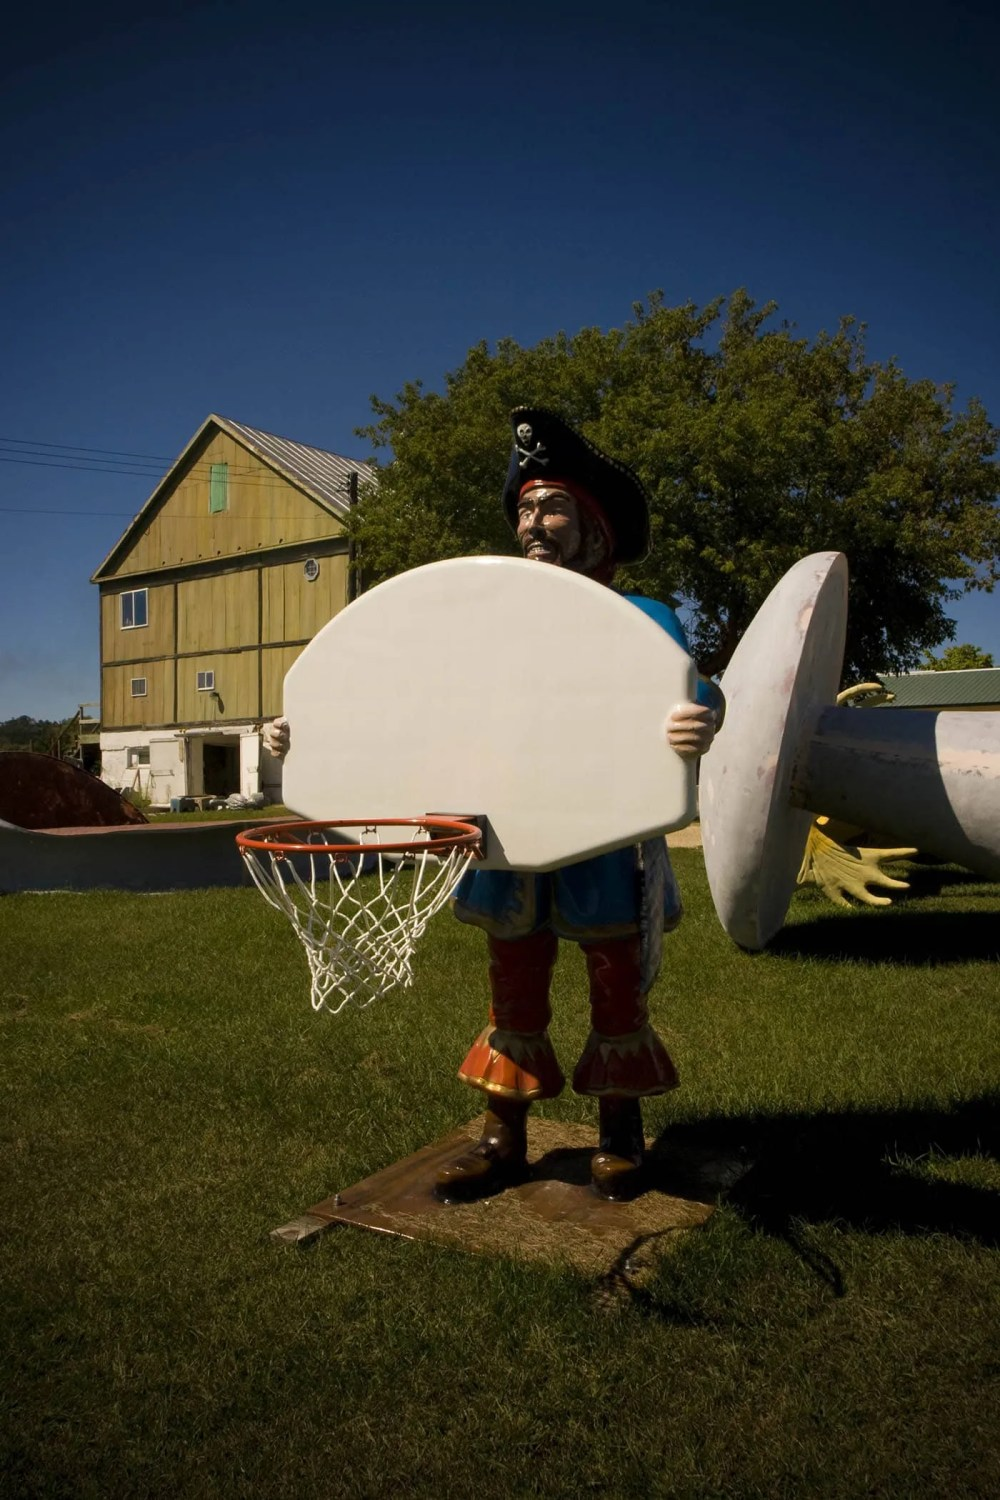 Fiberglass Pirate with Basketball Hoop - F.A.S.T. - Fiberglass Animals, Shapes & Trademarks in Sparta, Wisconsin